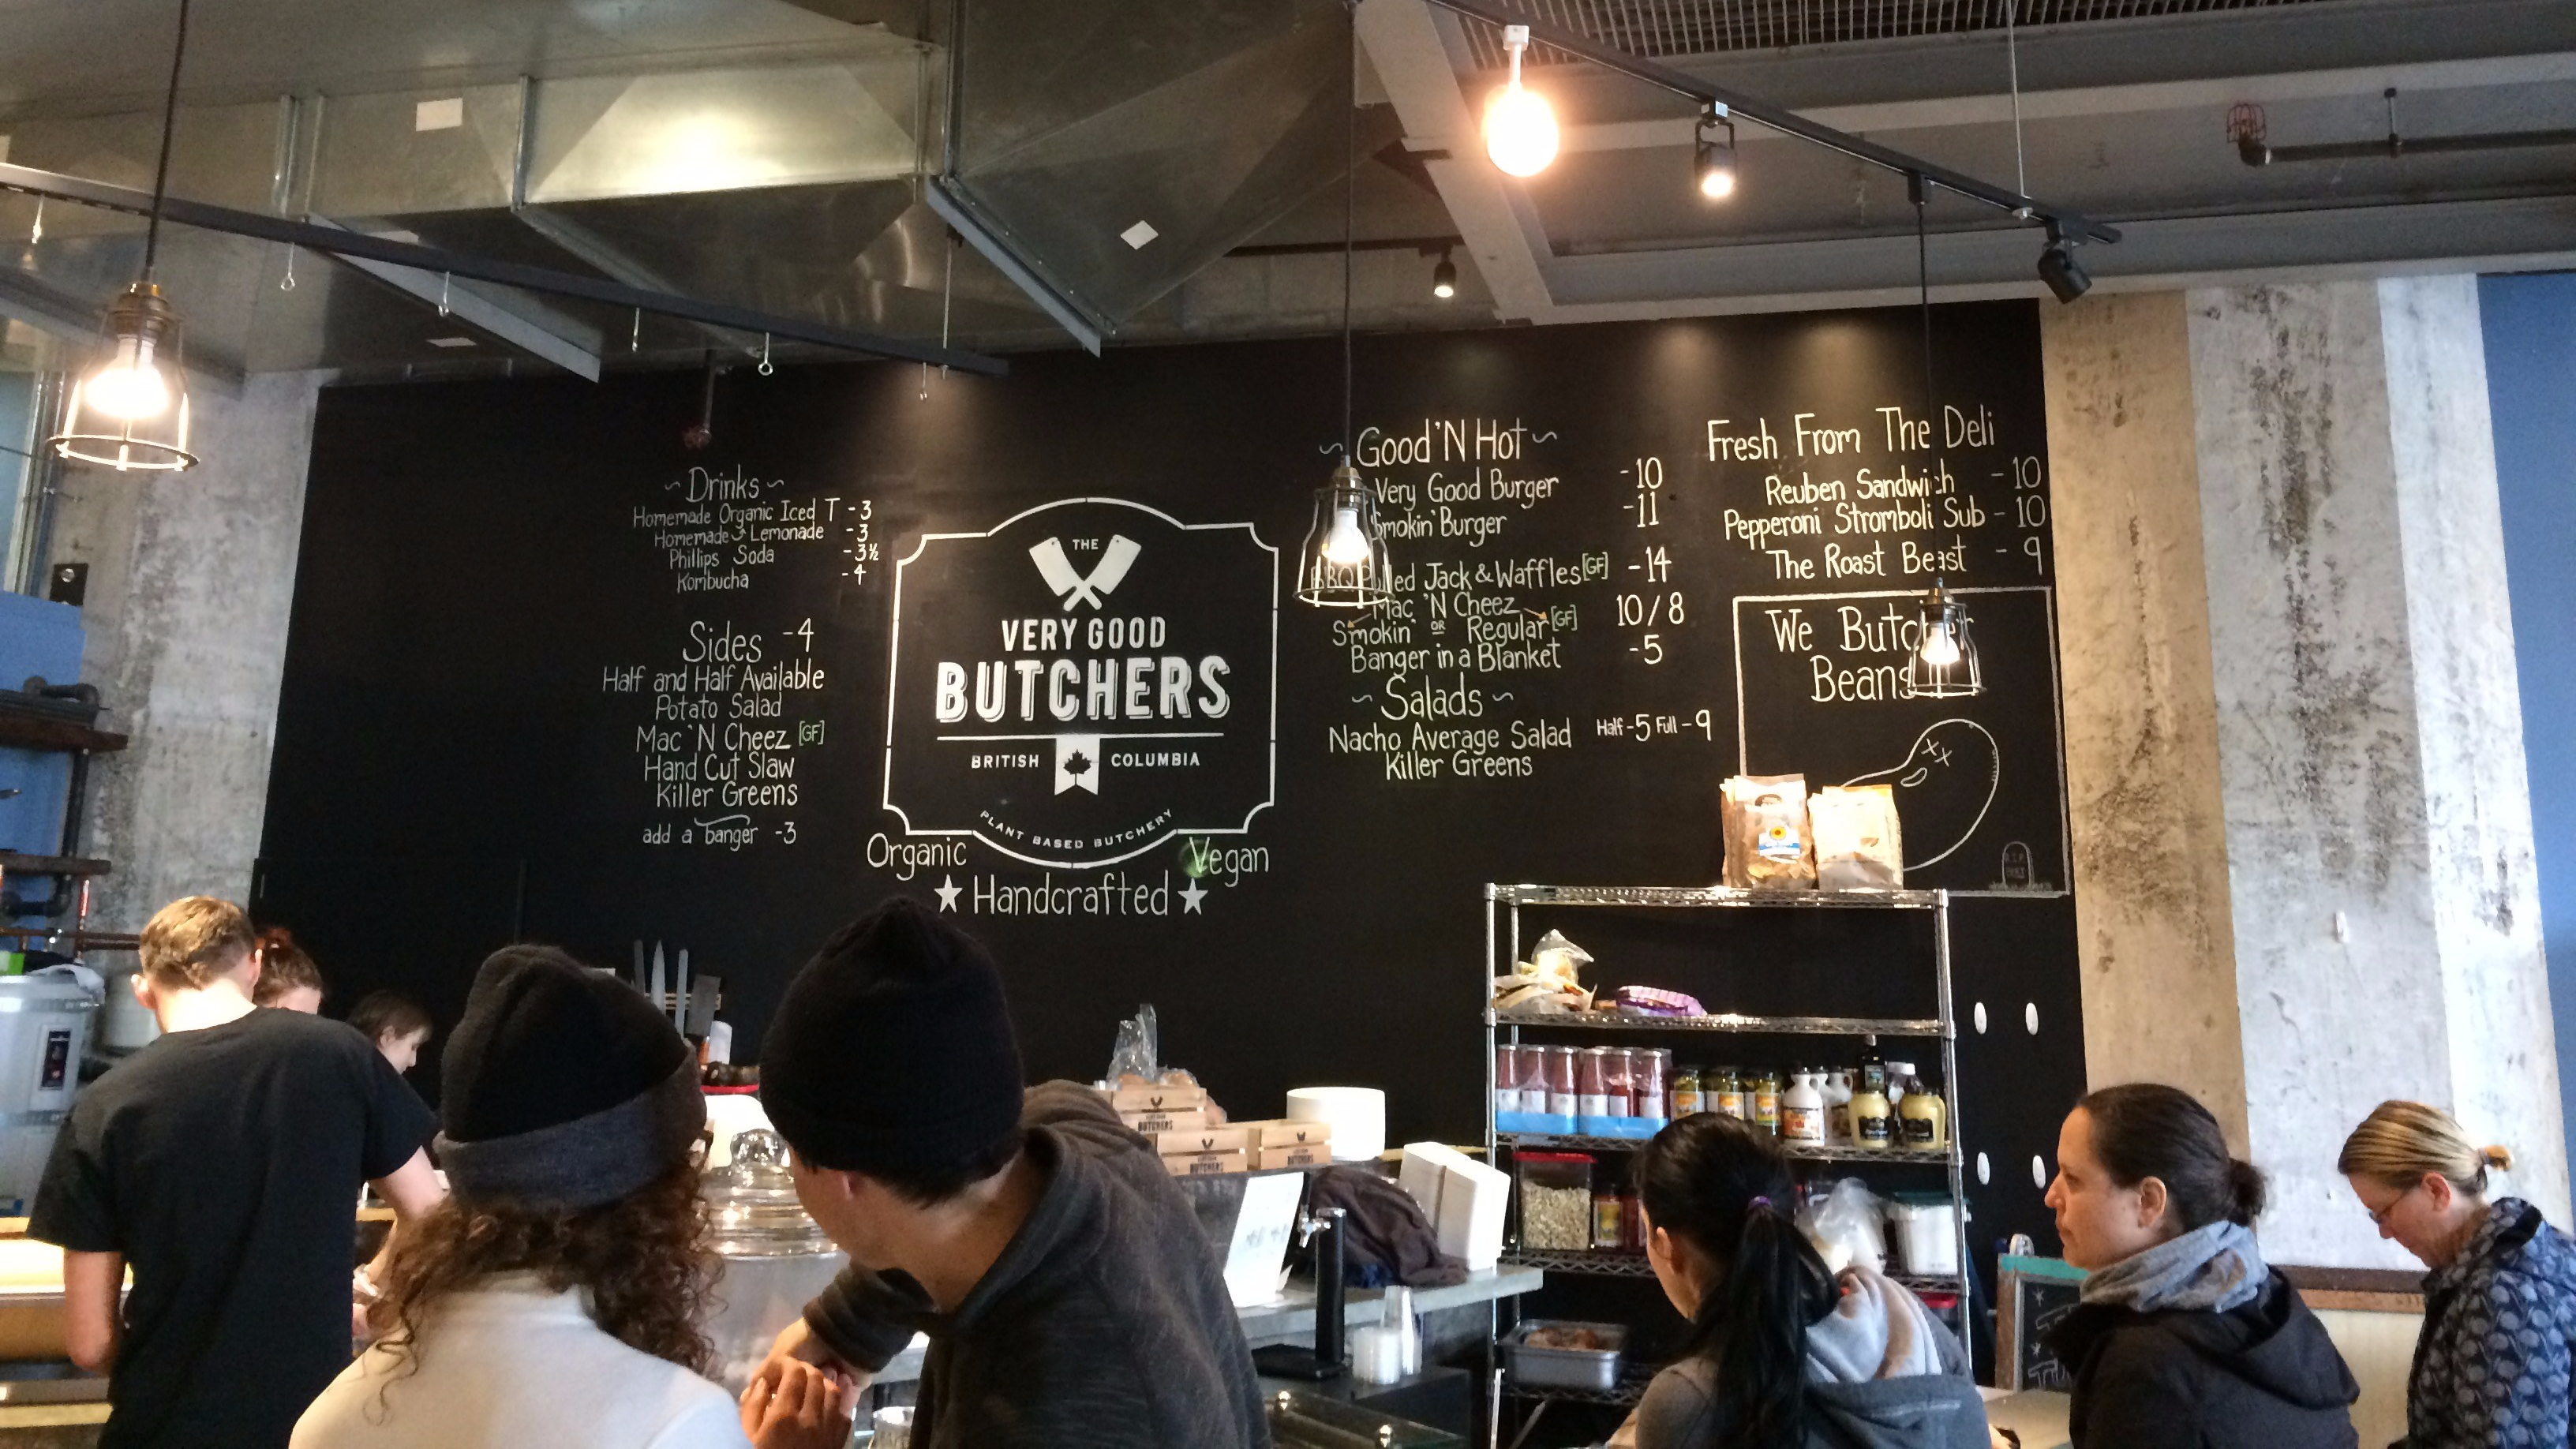 Victoria Welcomes The Very Good Butchers!